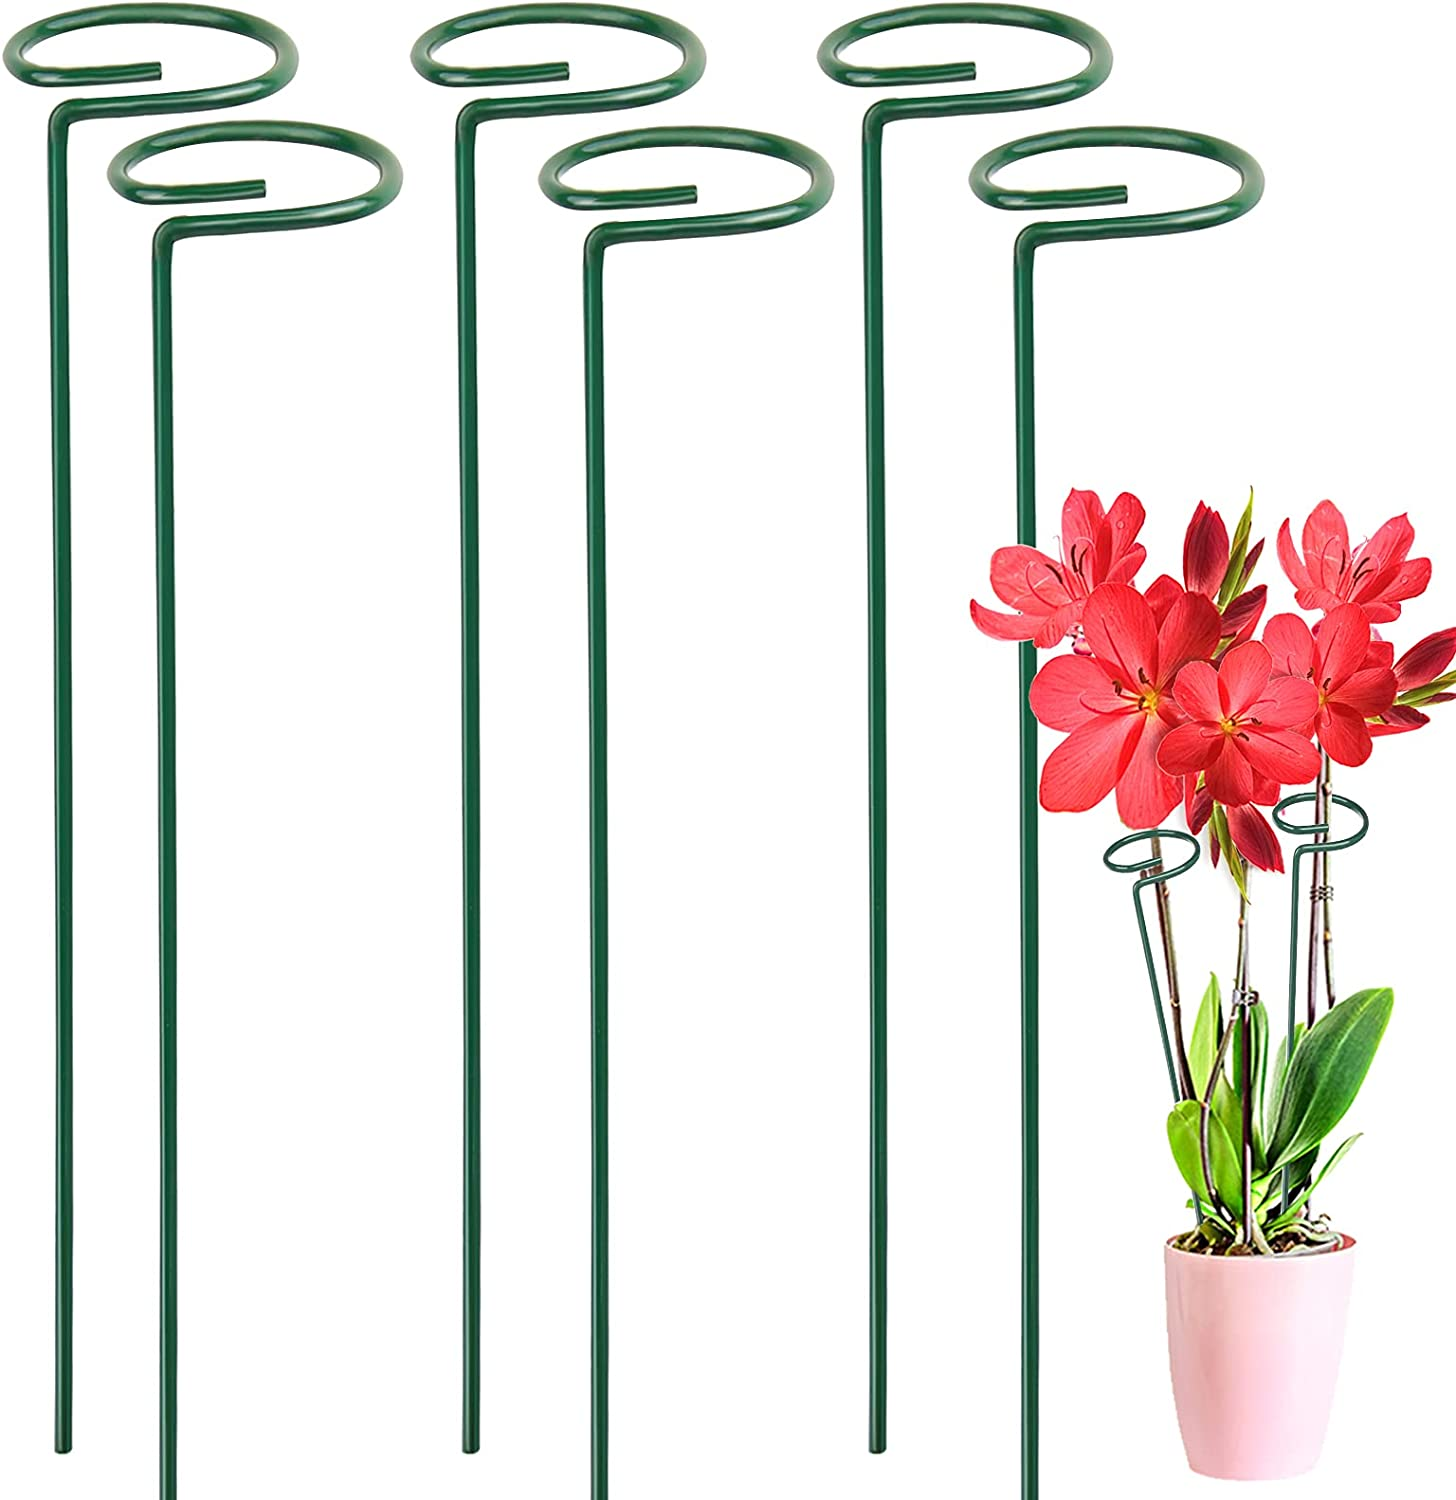 LEOBRO 6 Pack Plant Stakes Metal Stem Flowers for Max 73% OFF Single Import